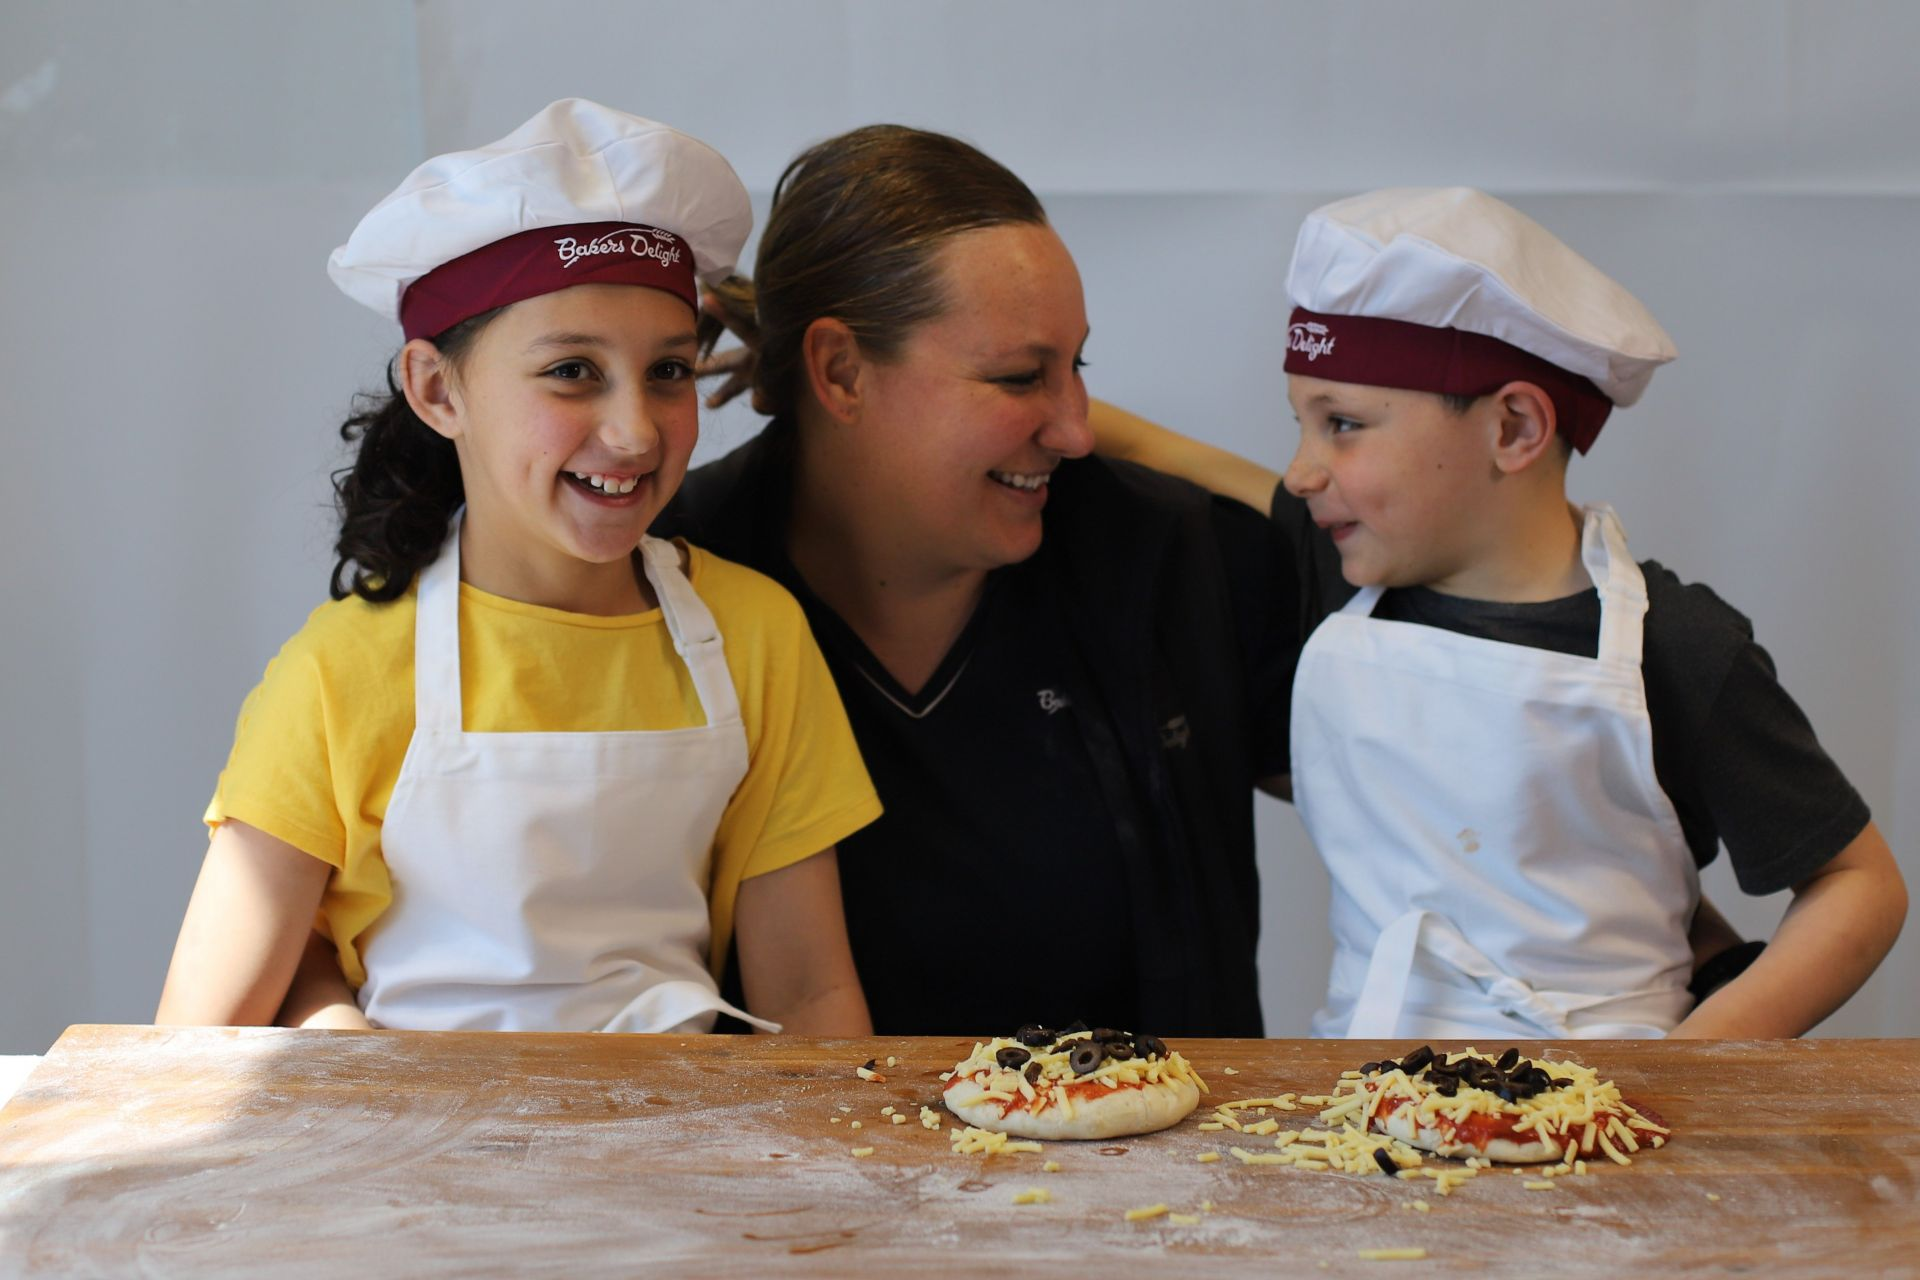 Bakers Delight tips on festive support team activities | Inside Franchise Business